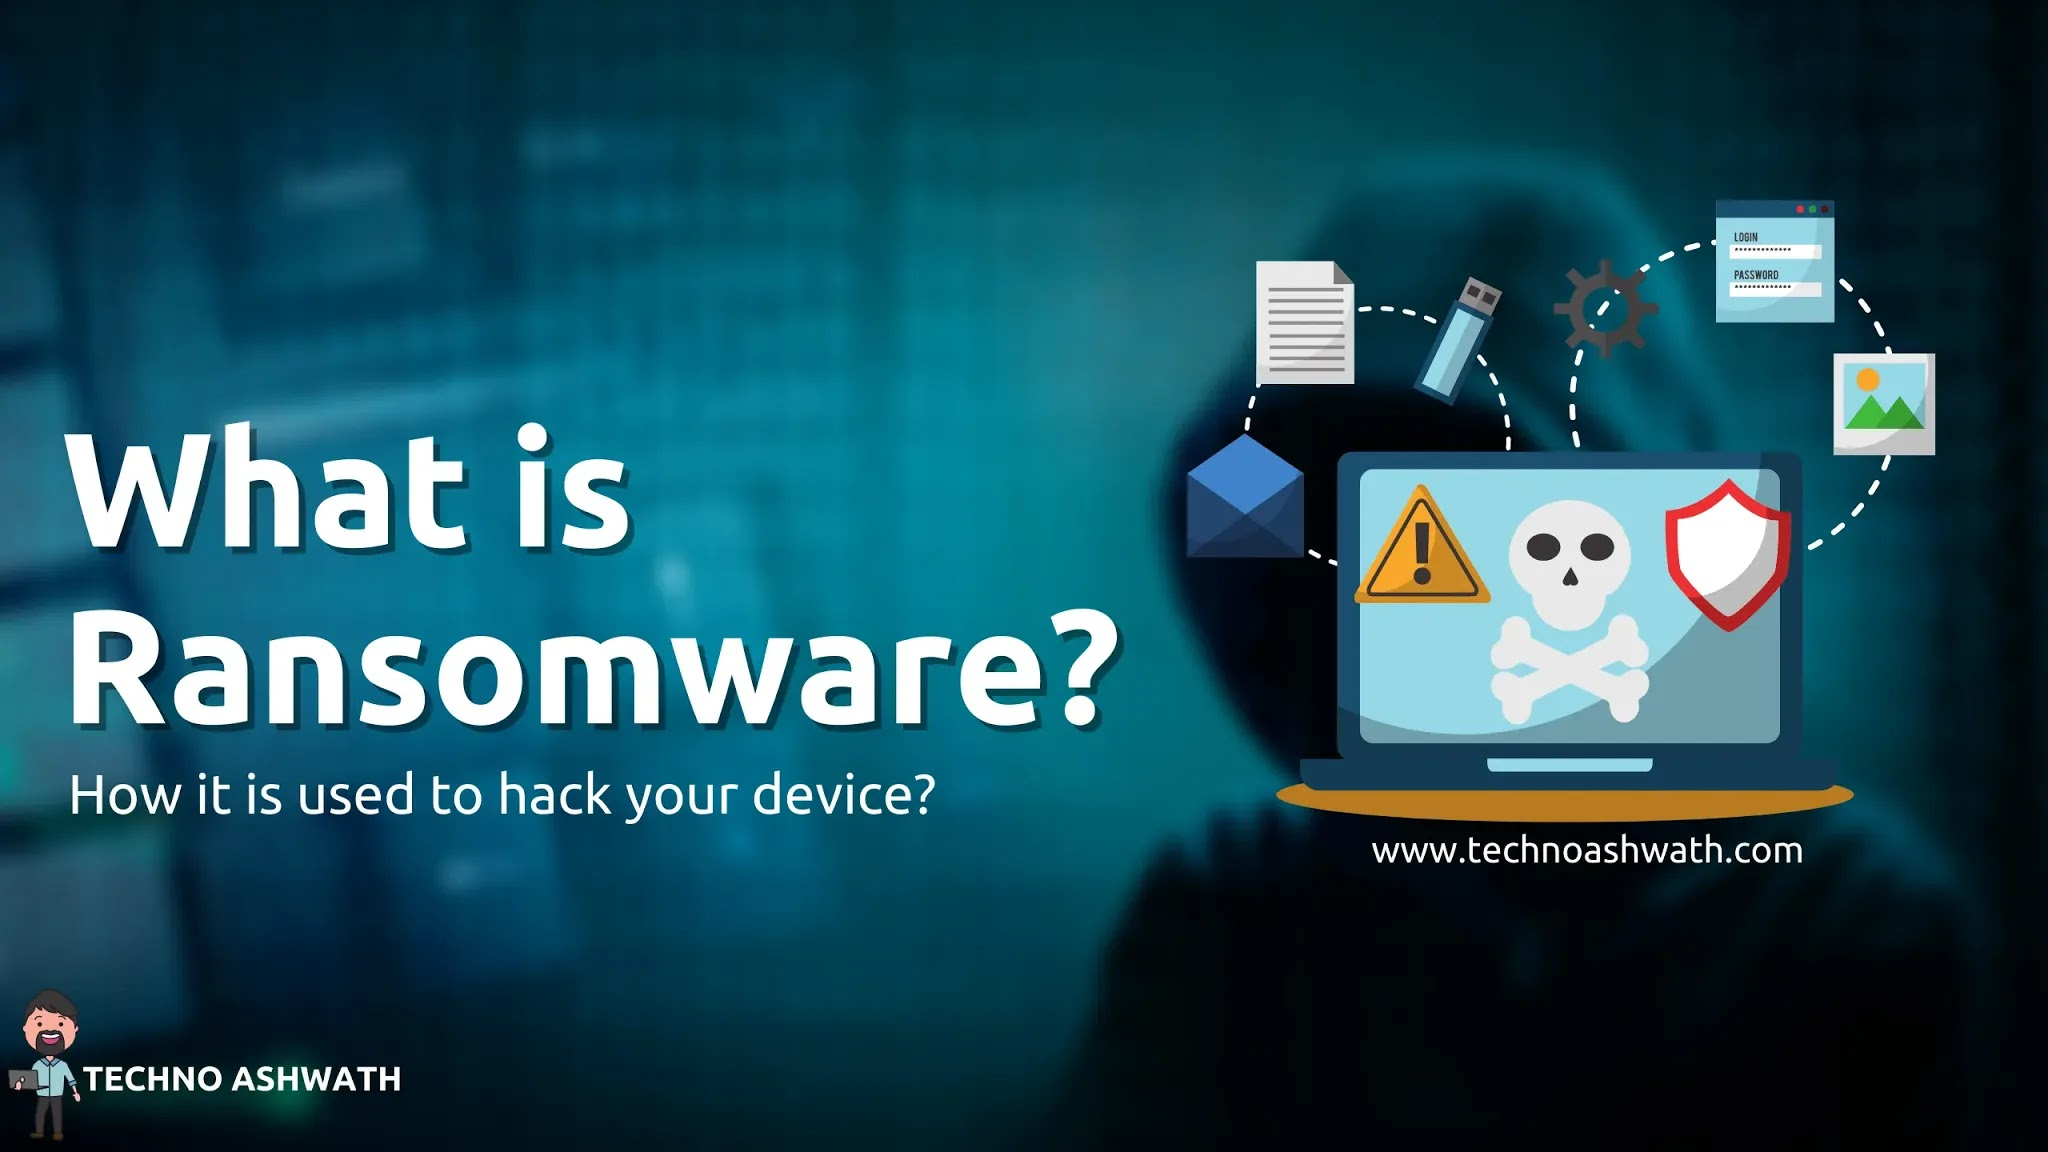 What is Ransomware Malware and How to prevent it? - Technoashwath.com